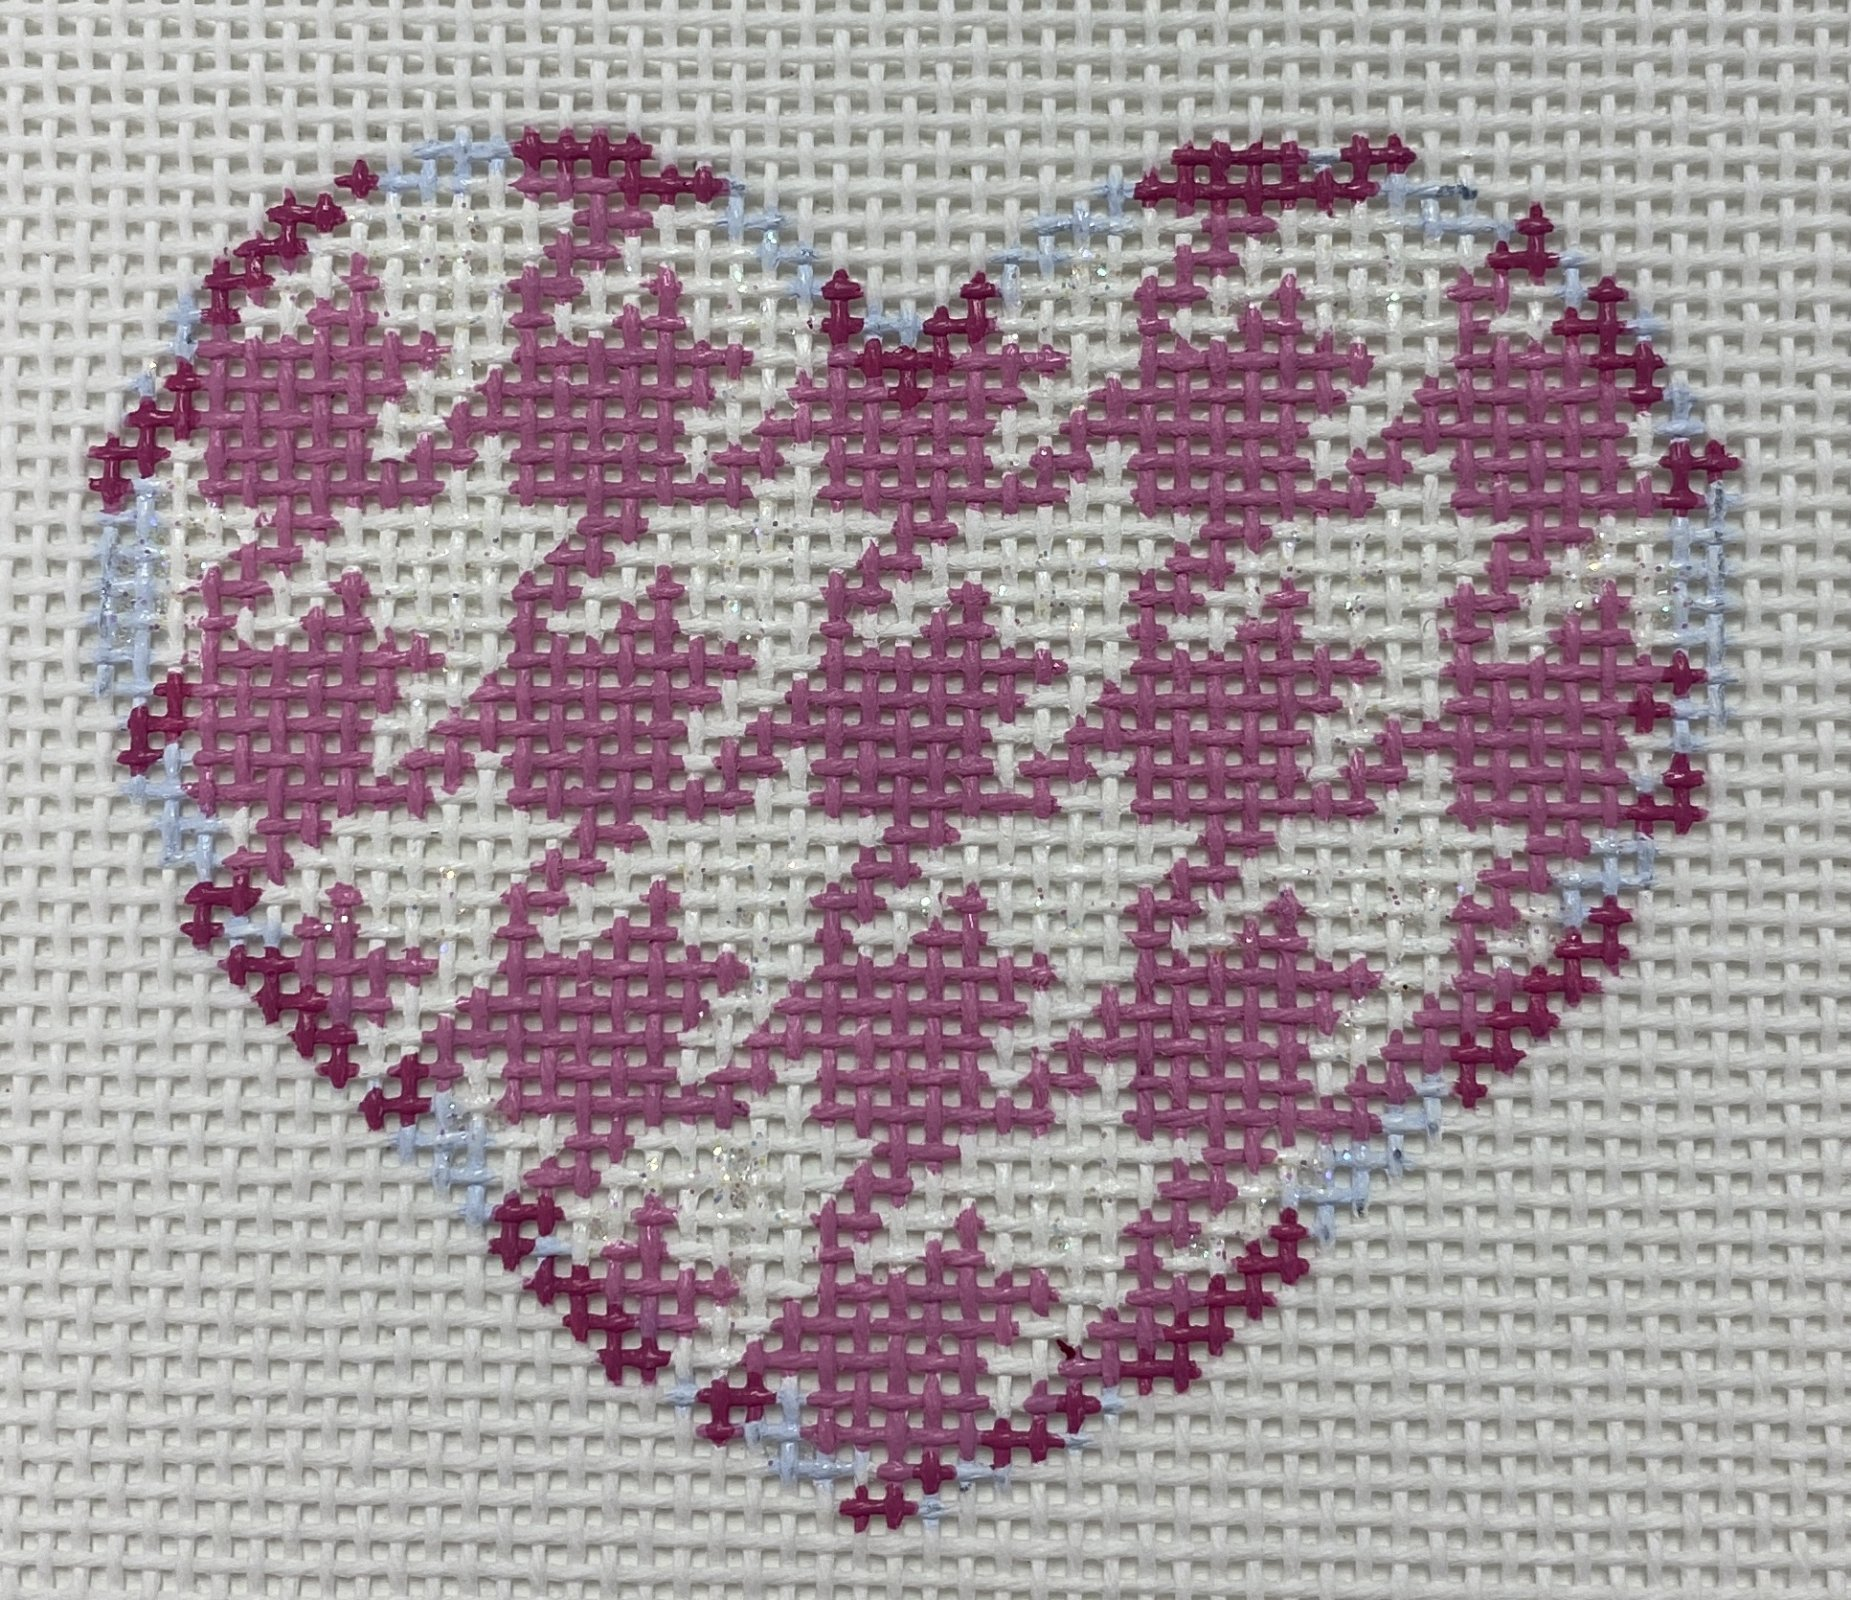 Pink Houndstooth Heart,18 ct.,2.25x2.5